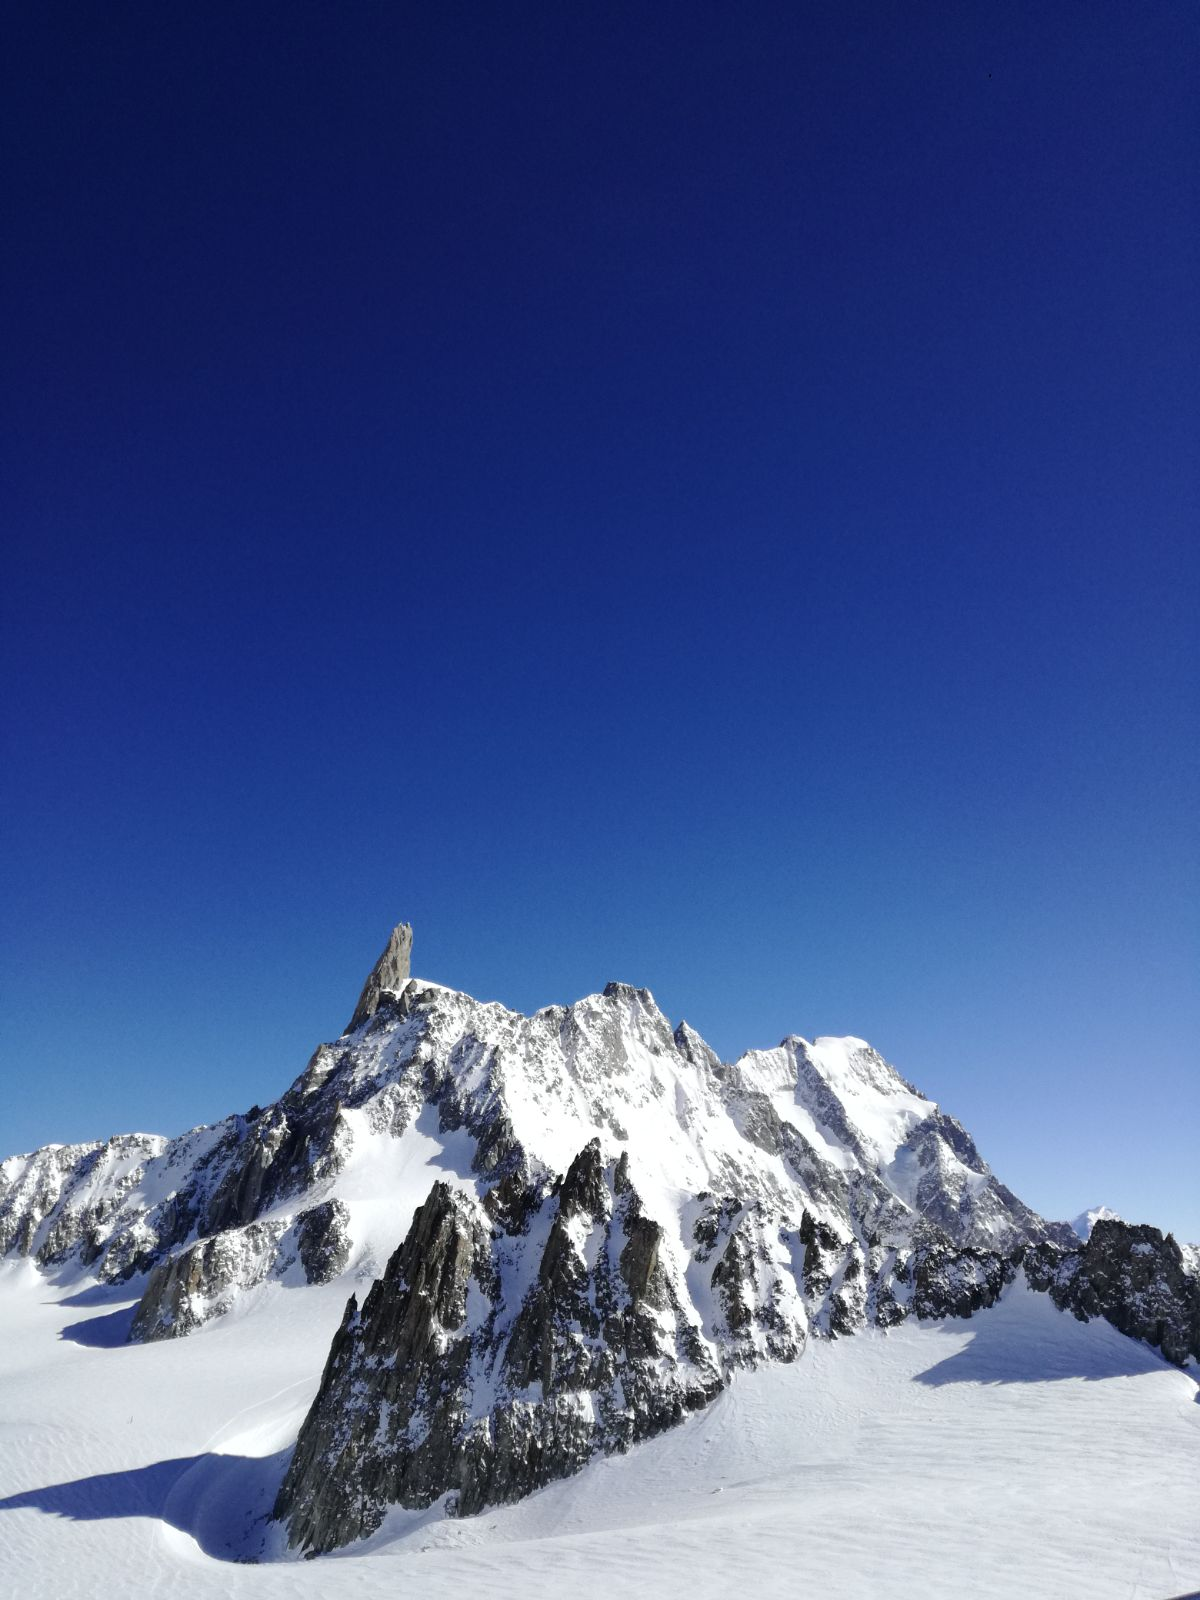 vallee blanche guide alpine proup (62)